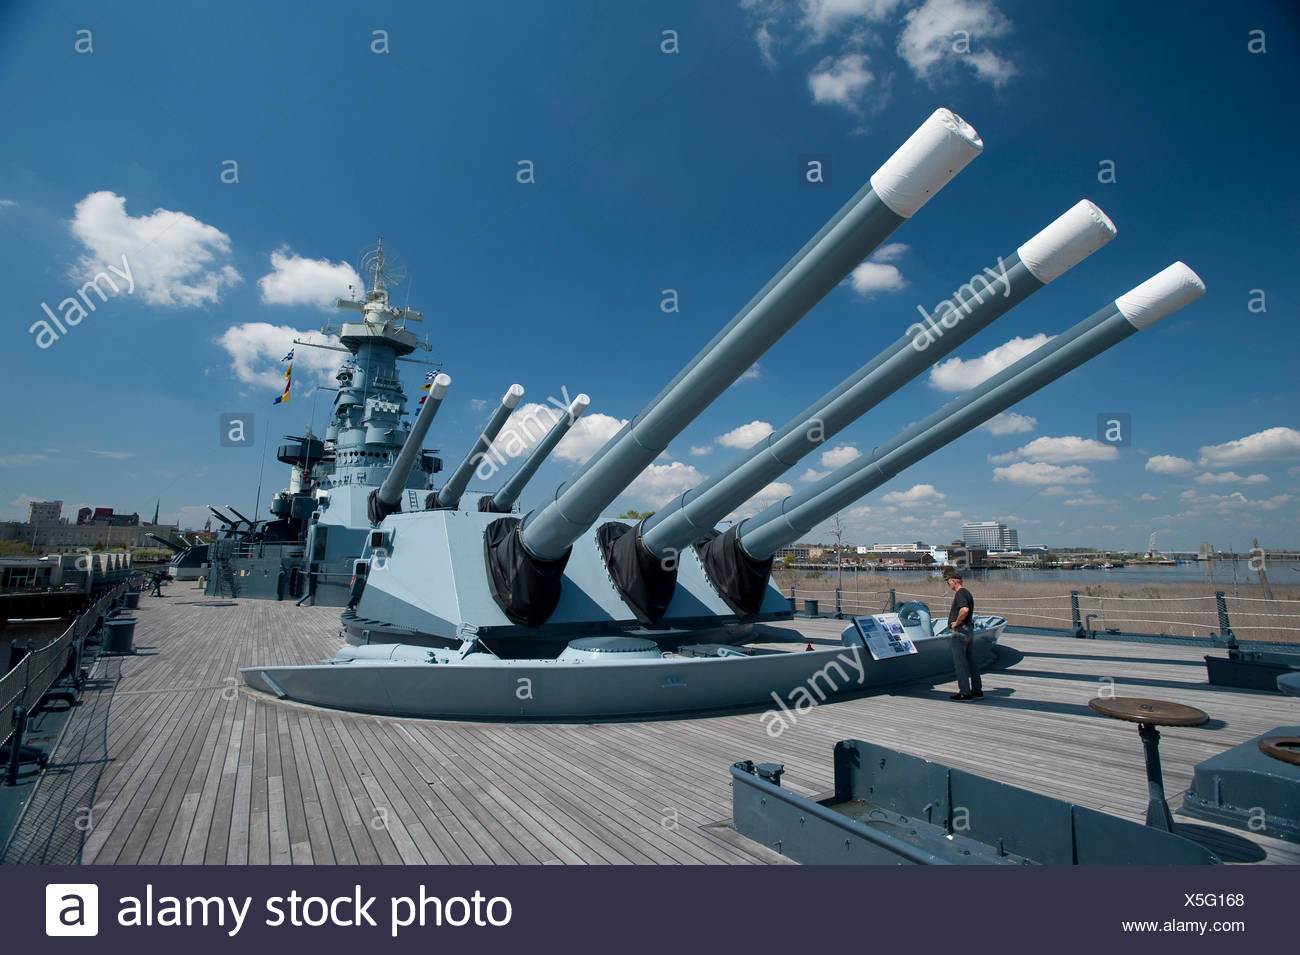 the-forward-turrets-of-the-battleship-us